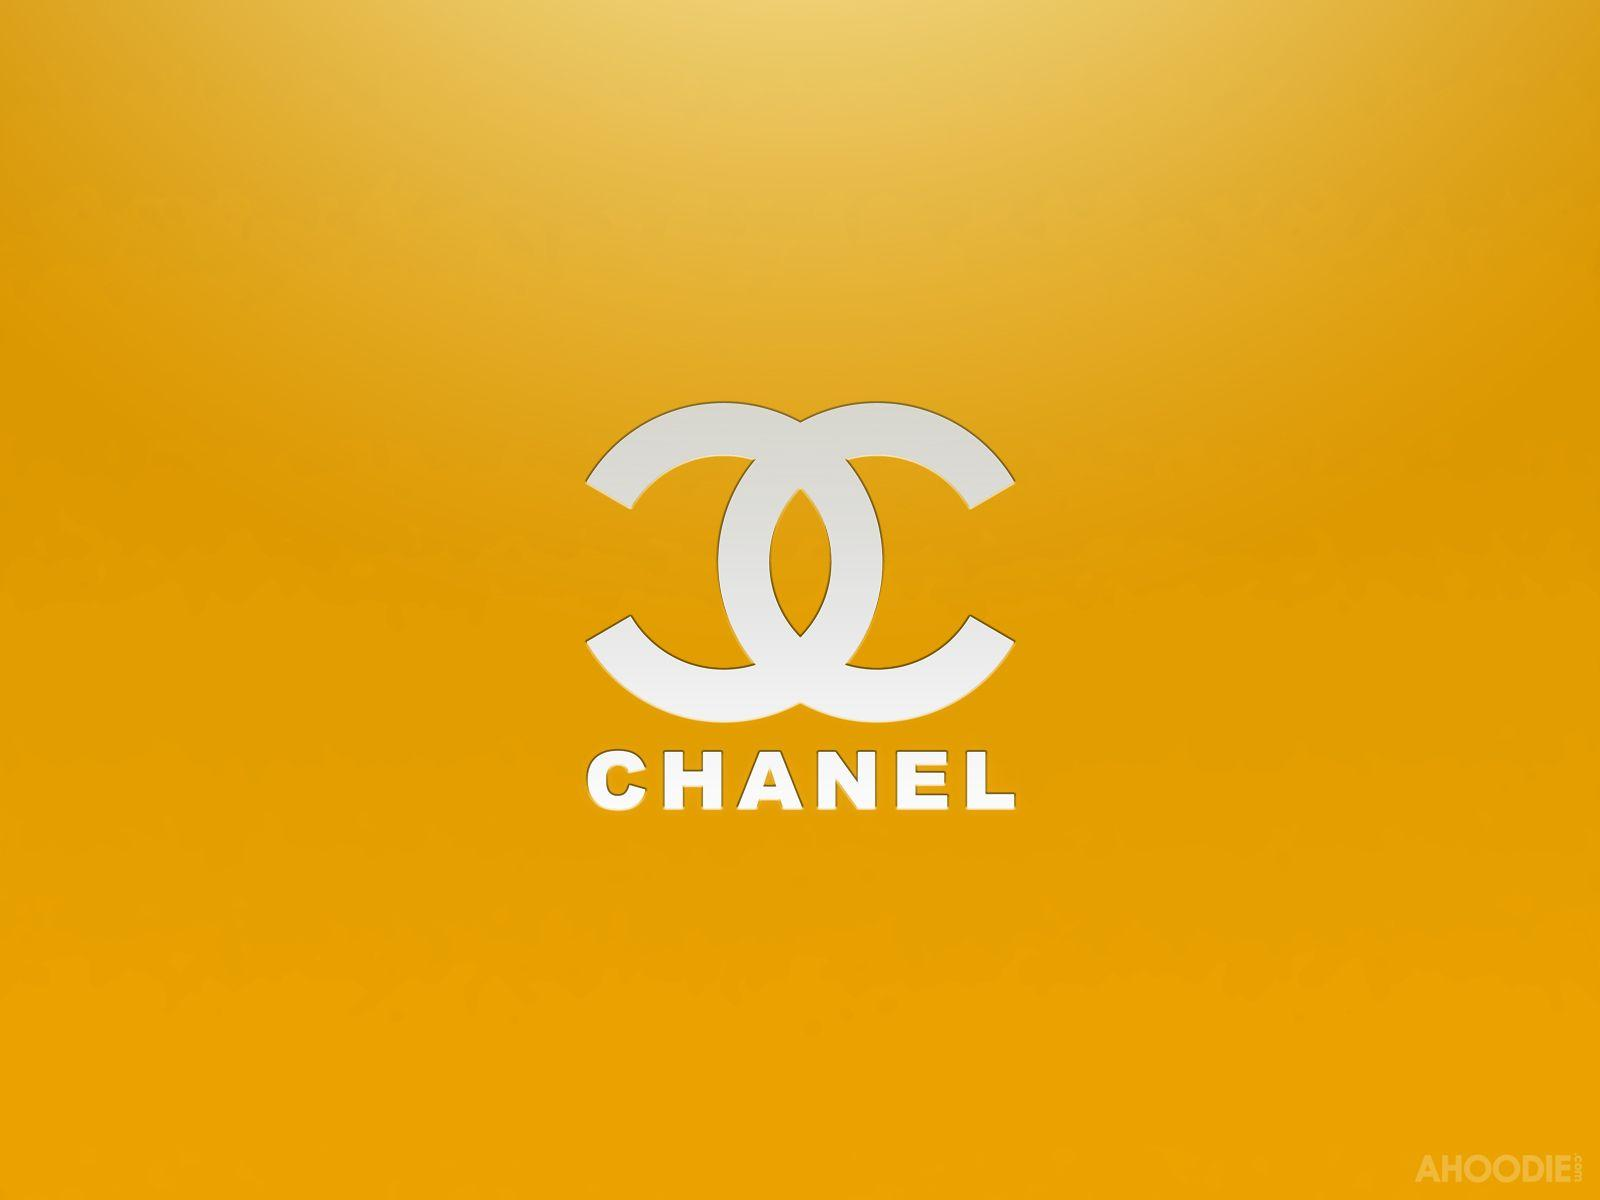 Chanel Wallpaper For Iphone 5 Chanel Logo Wallpapers Wallpaper Cave